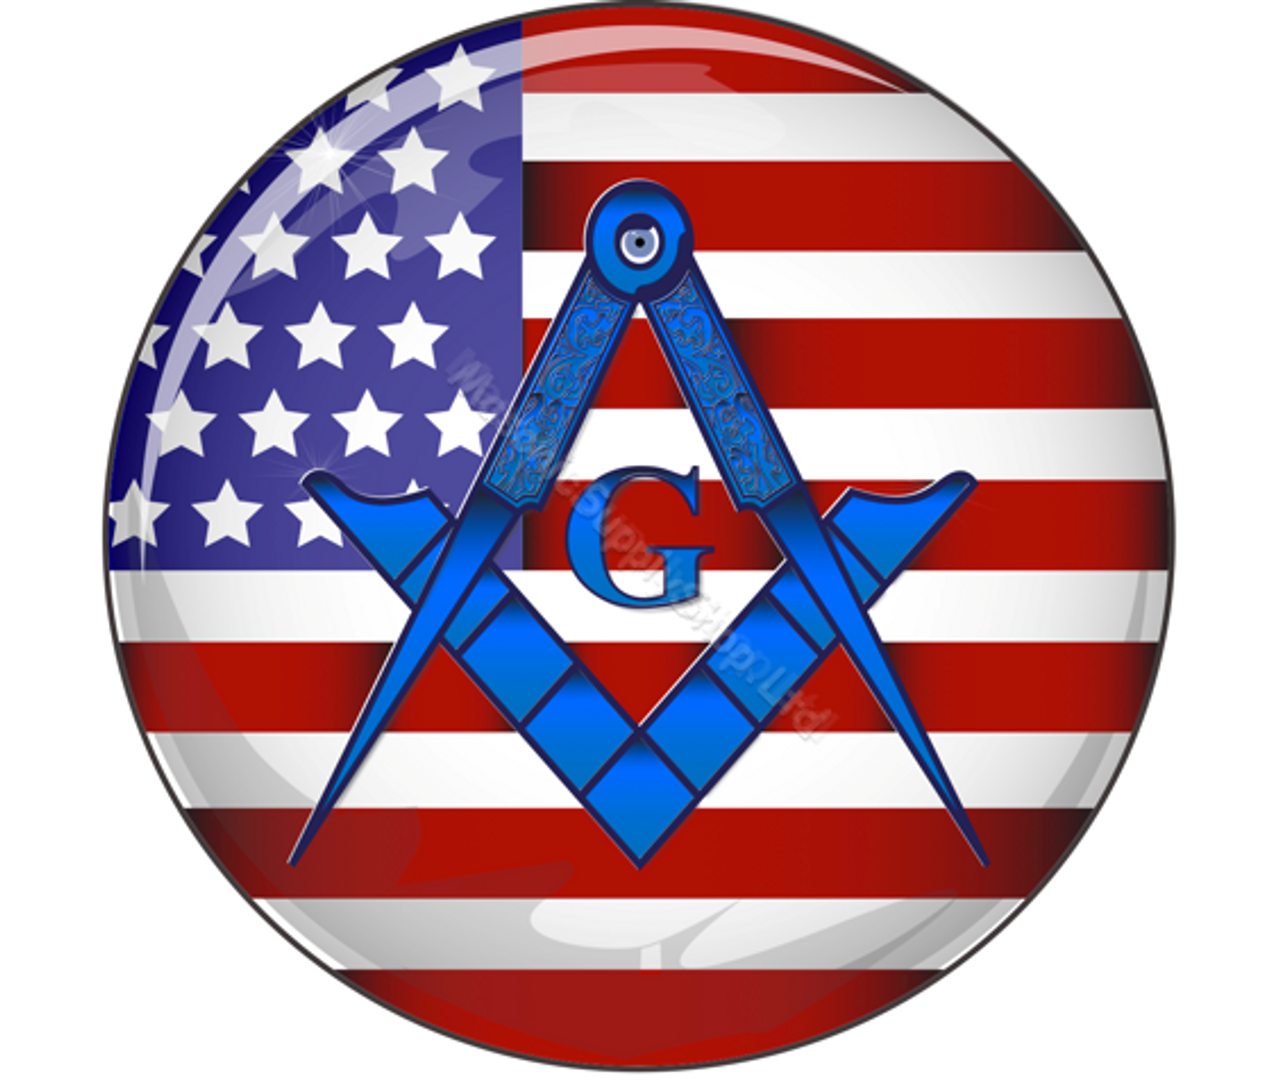 Car Decal Stars and Stripes with Blue Square & Compass with G